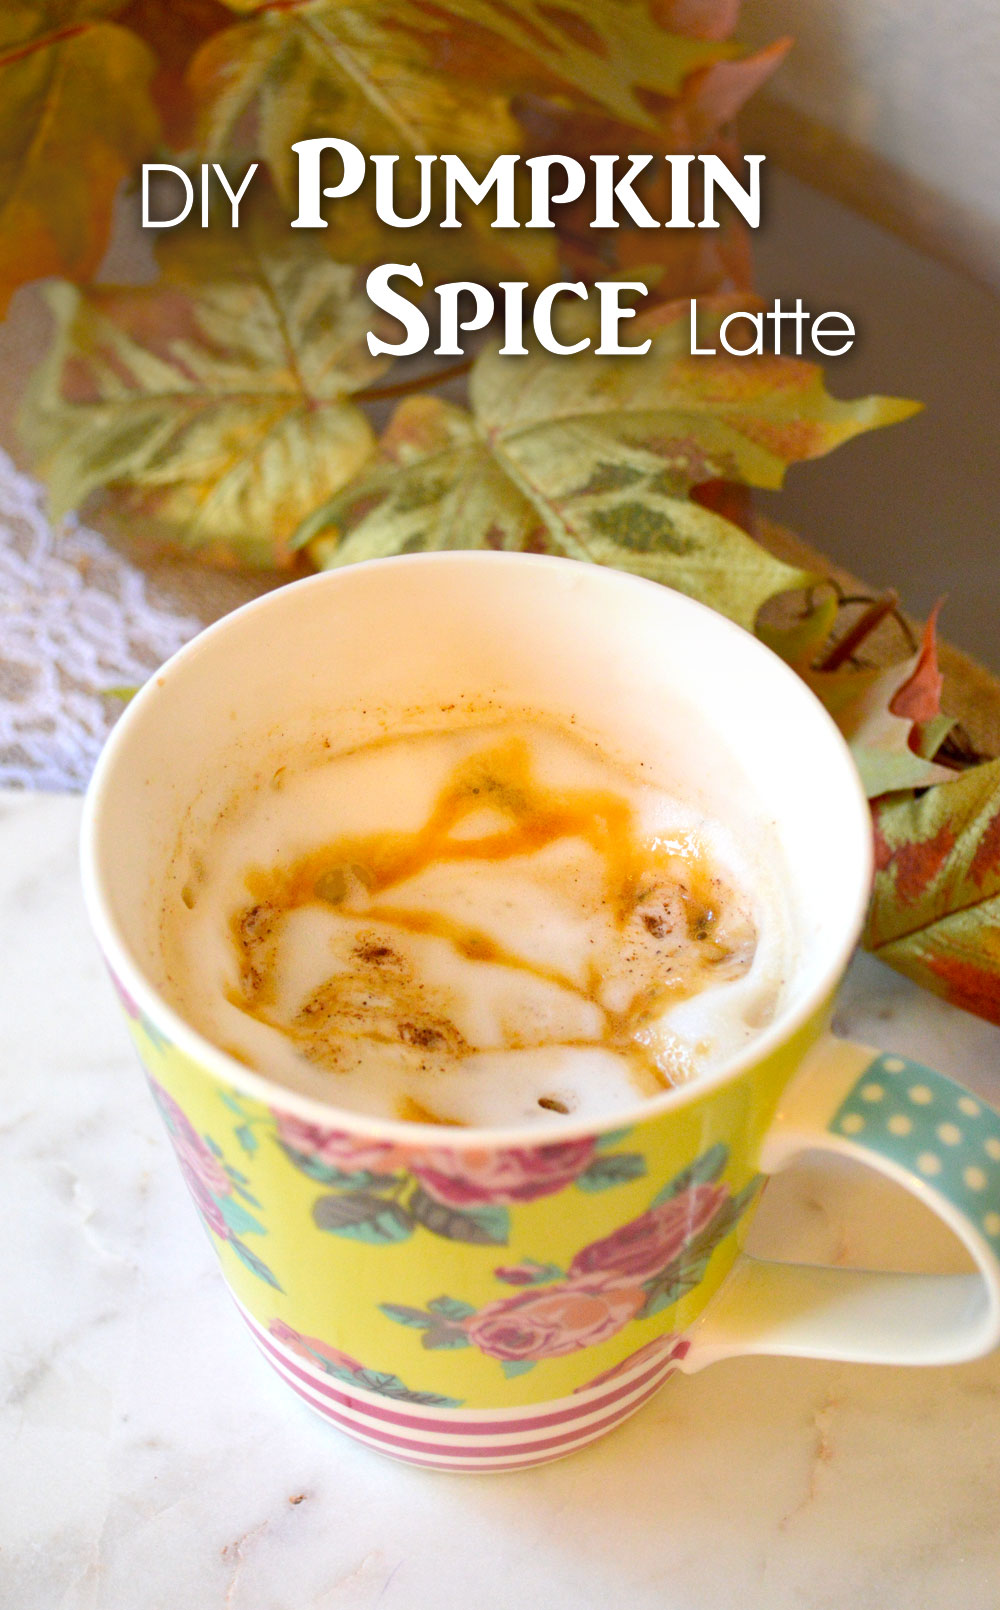 Easy DIY Pumpkin Spice Latte - Mommy Scene